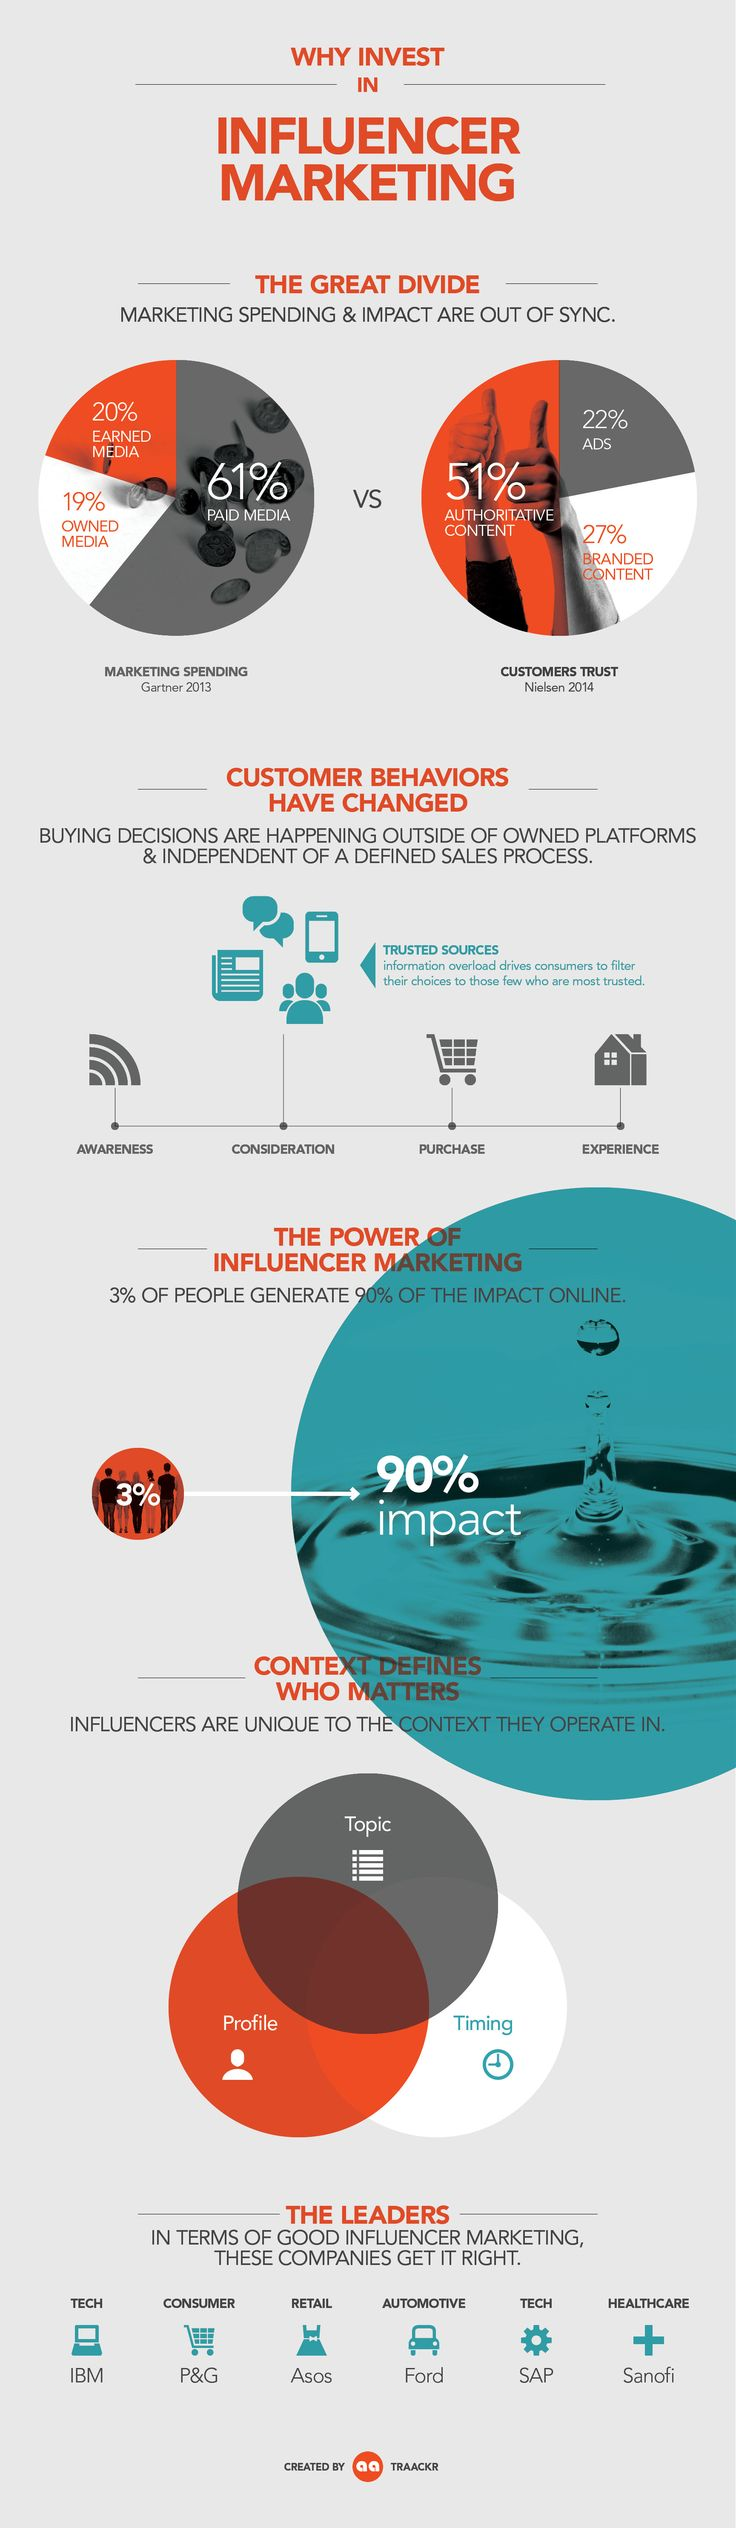 Why Invest in Influence Marketing #infographic #Marketing #Business